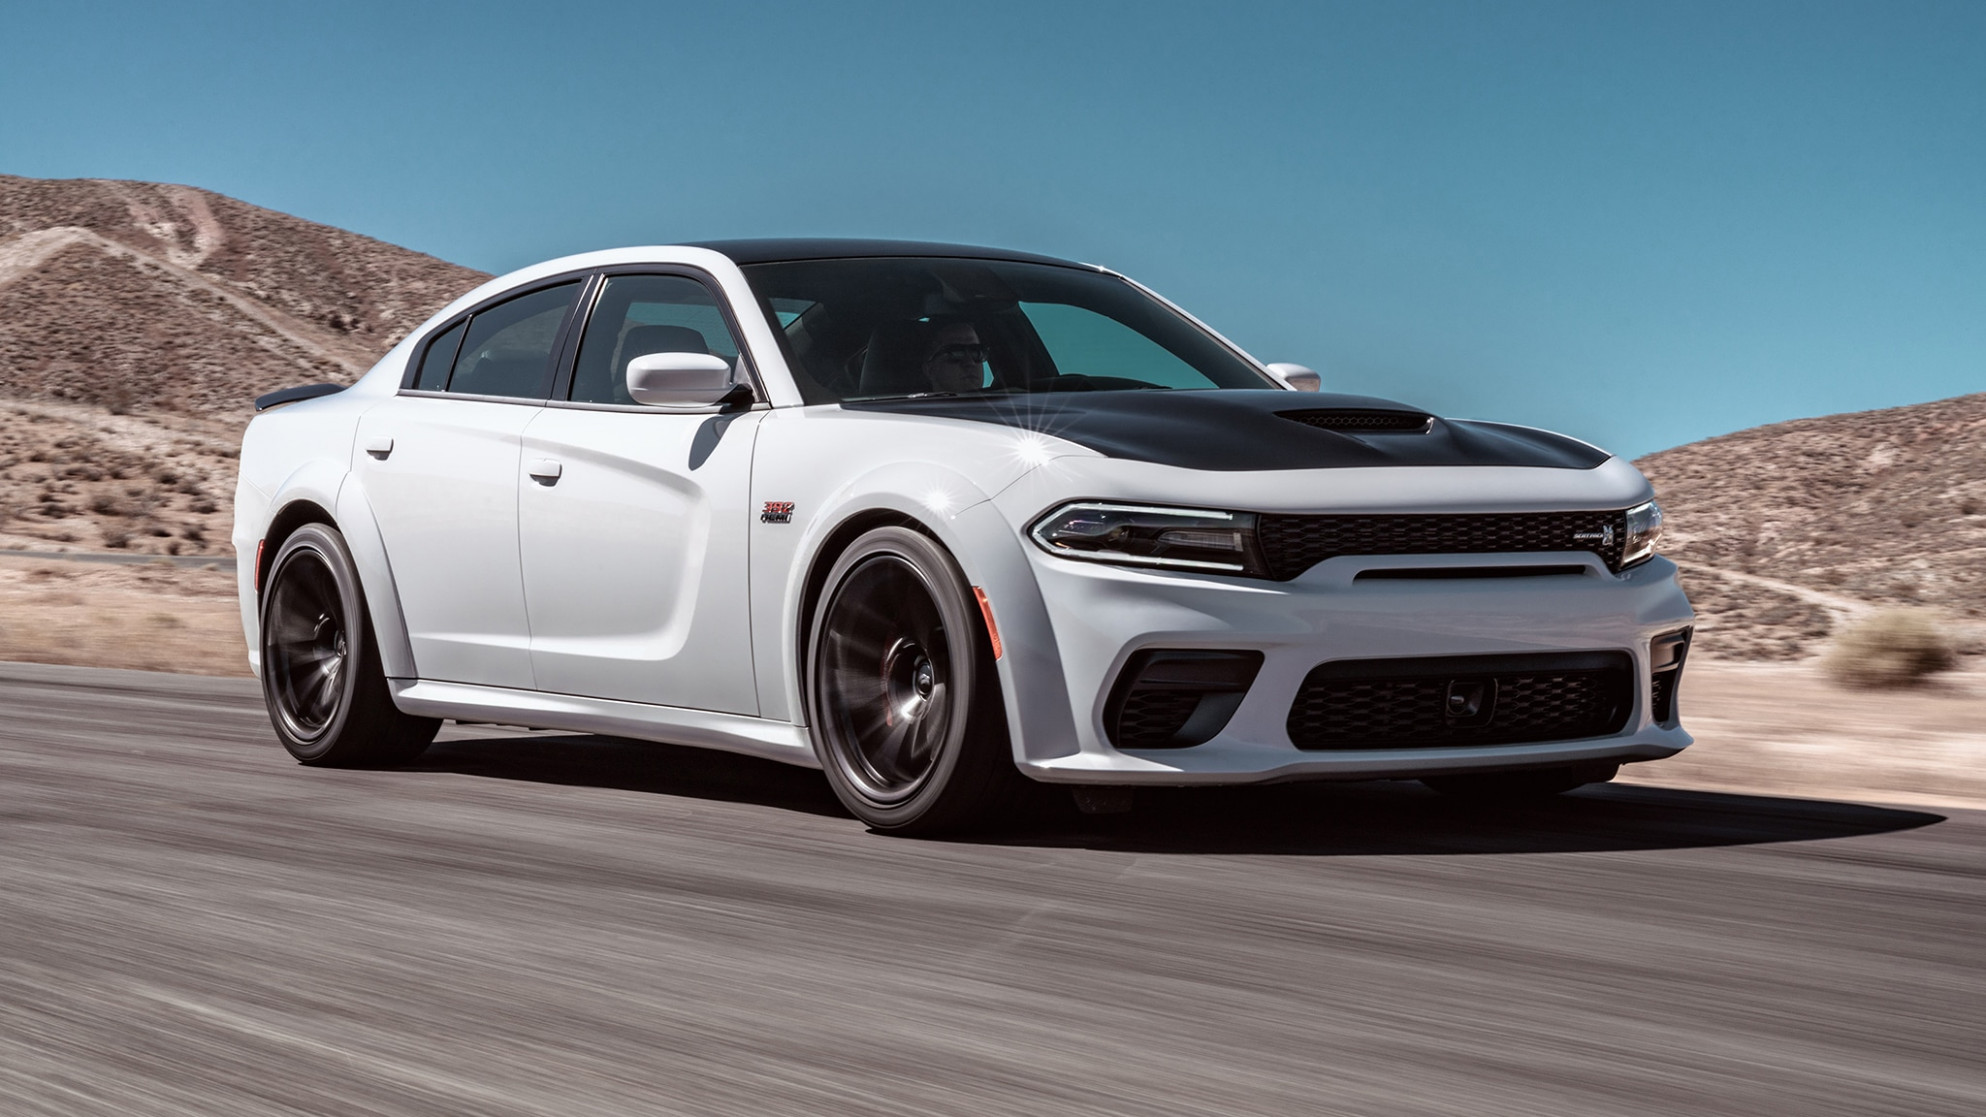 12 Dodge Charger Prices Announced for Daytona, Hellcat Widebody ..